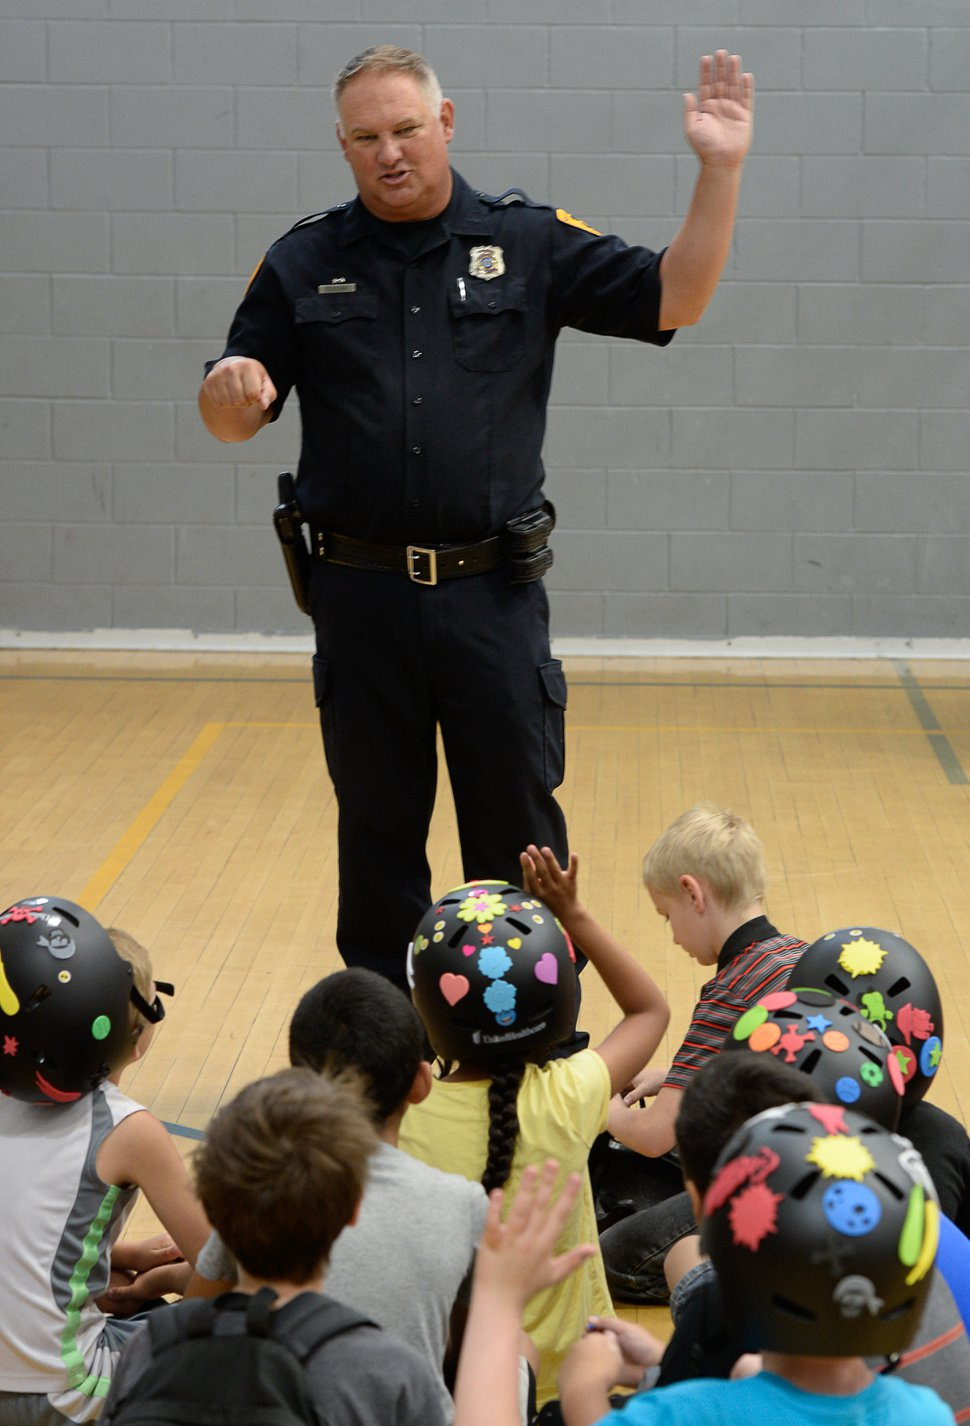 (Francisco Kjolseth | Tribune file photo) Detective Greg Wilking shows kids the proper way of signaling their turns while on the bike as more than 50 Salt Lake City-area kids received a new bicycle helmet at the Capitol West Boys & Girls Club on Tuesday, July 31, 2018. Wilking is spokesman for the Salt Lake City Police Department and responded to questions about missing evidence in cold cases.